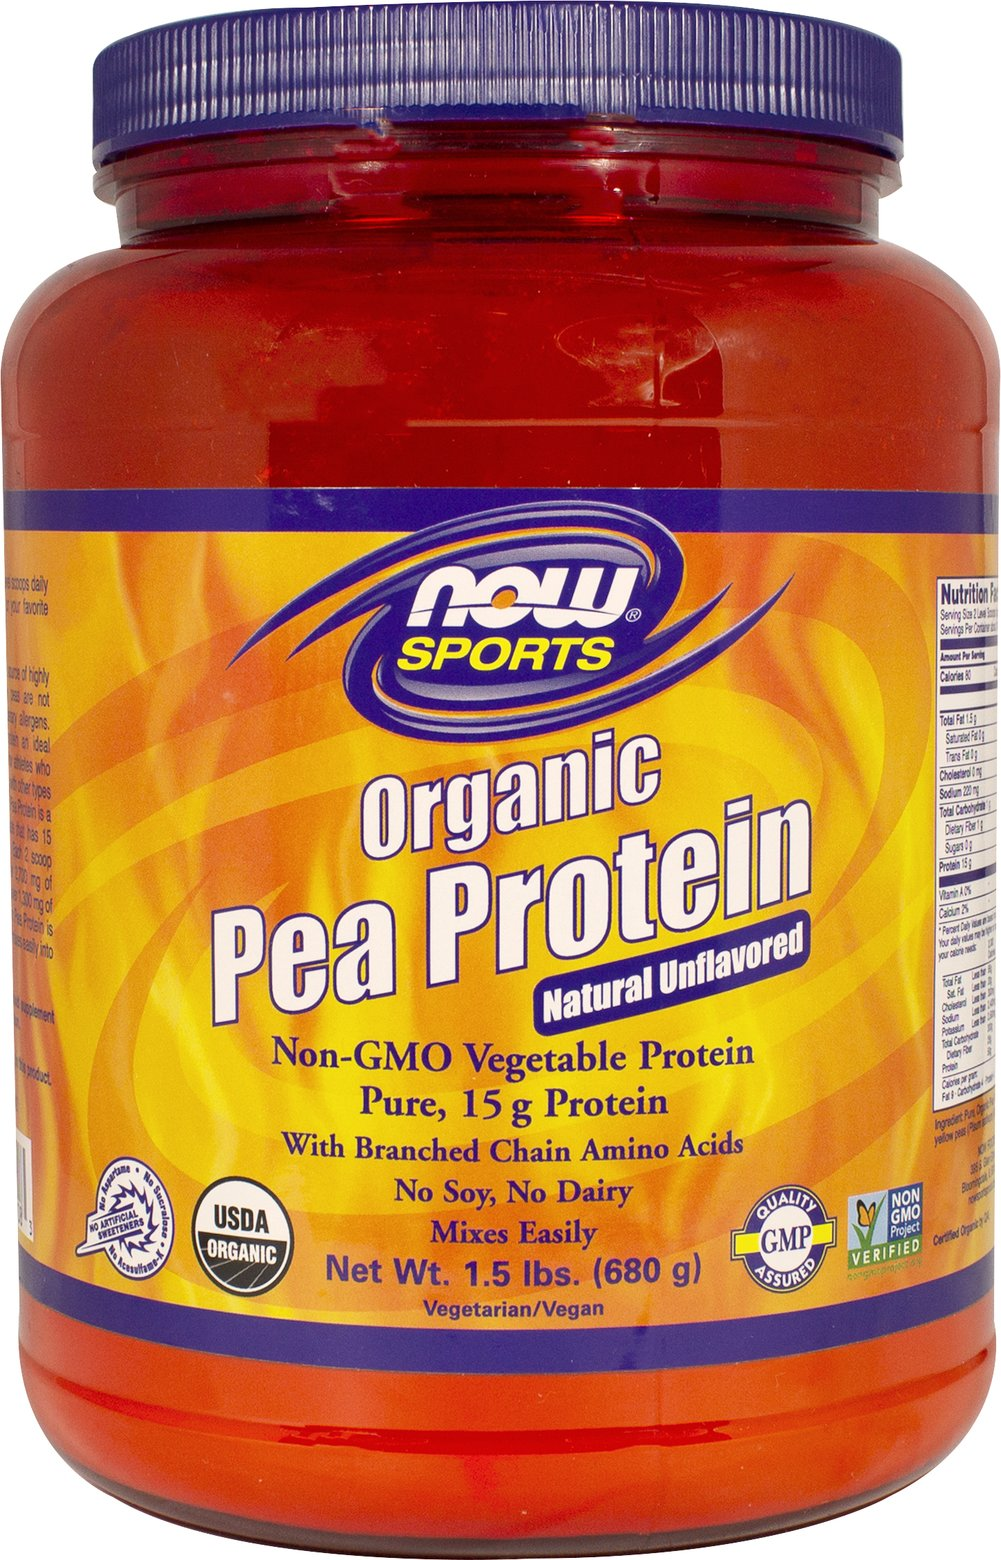 Organic Pea Protein Unflavored Thumbnail Alternate Bottle View